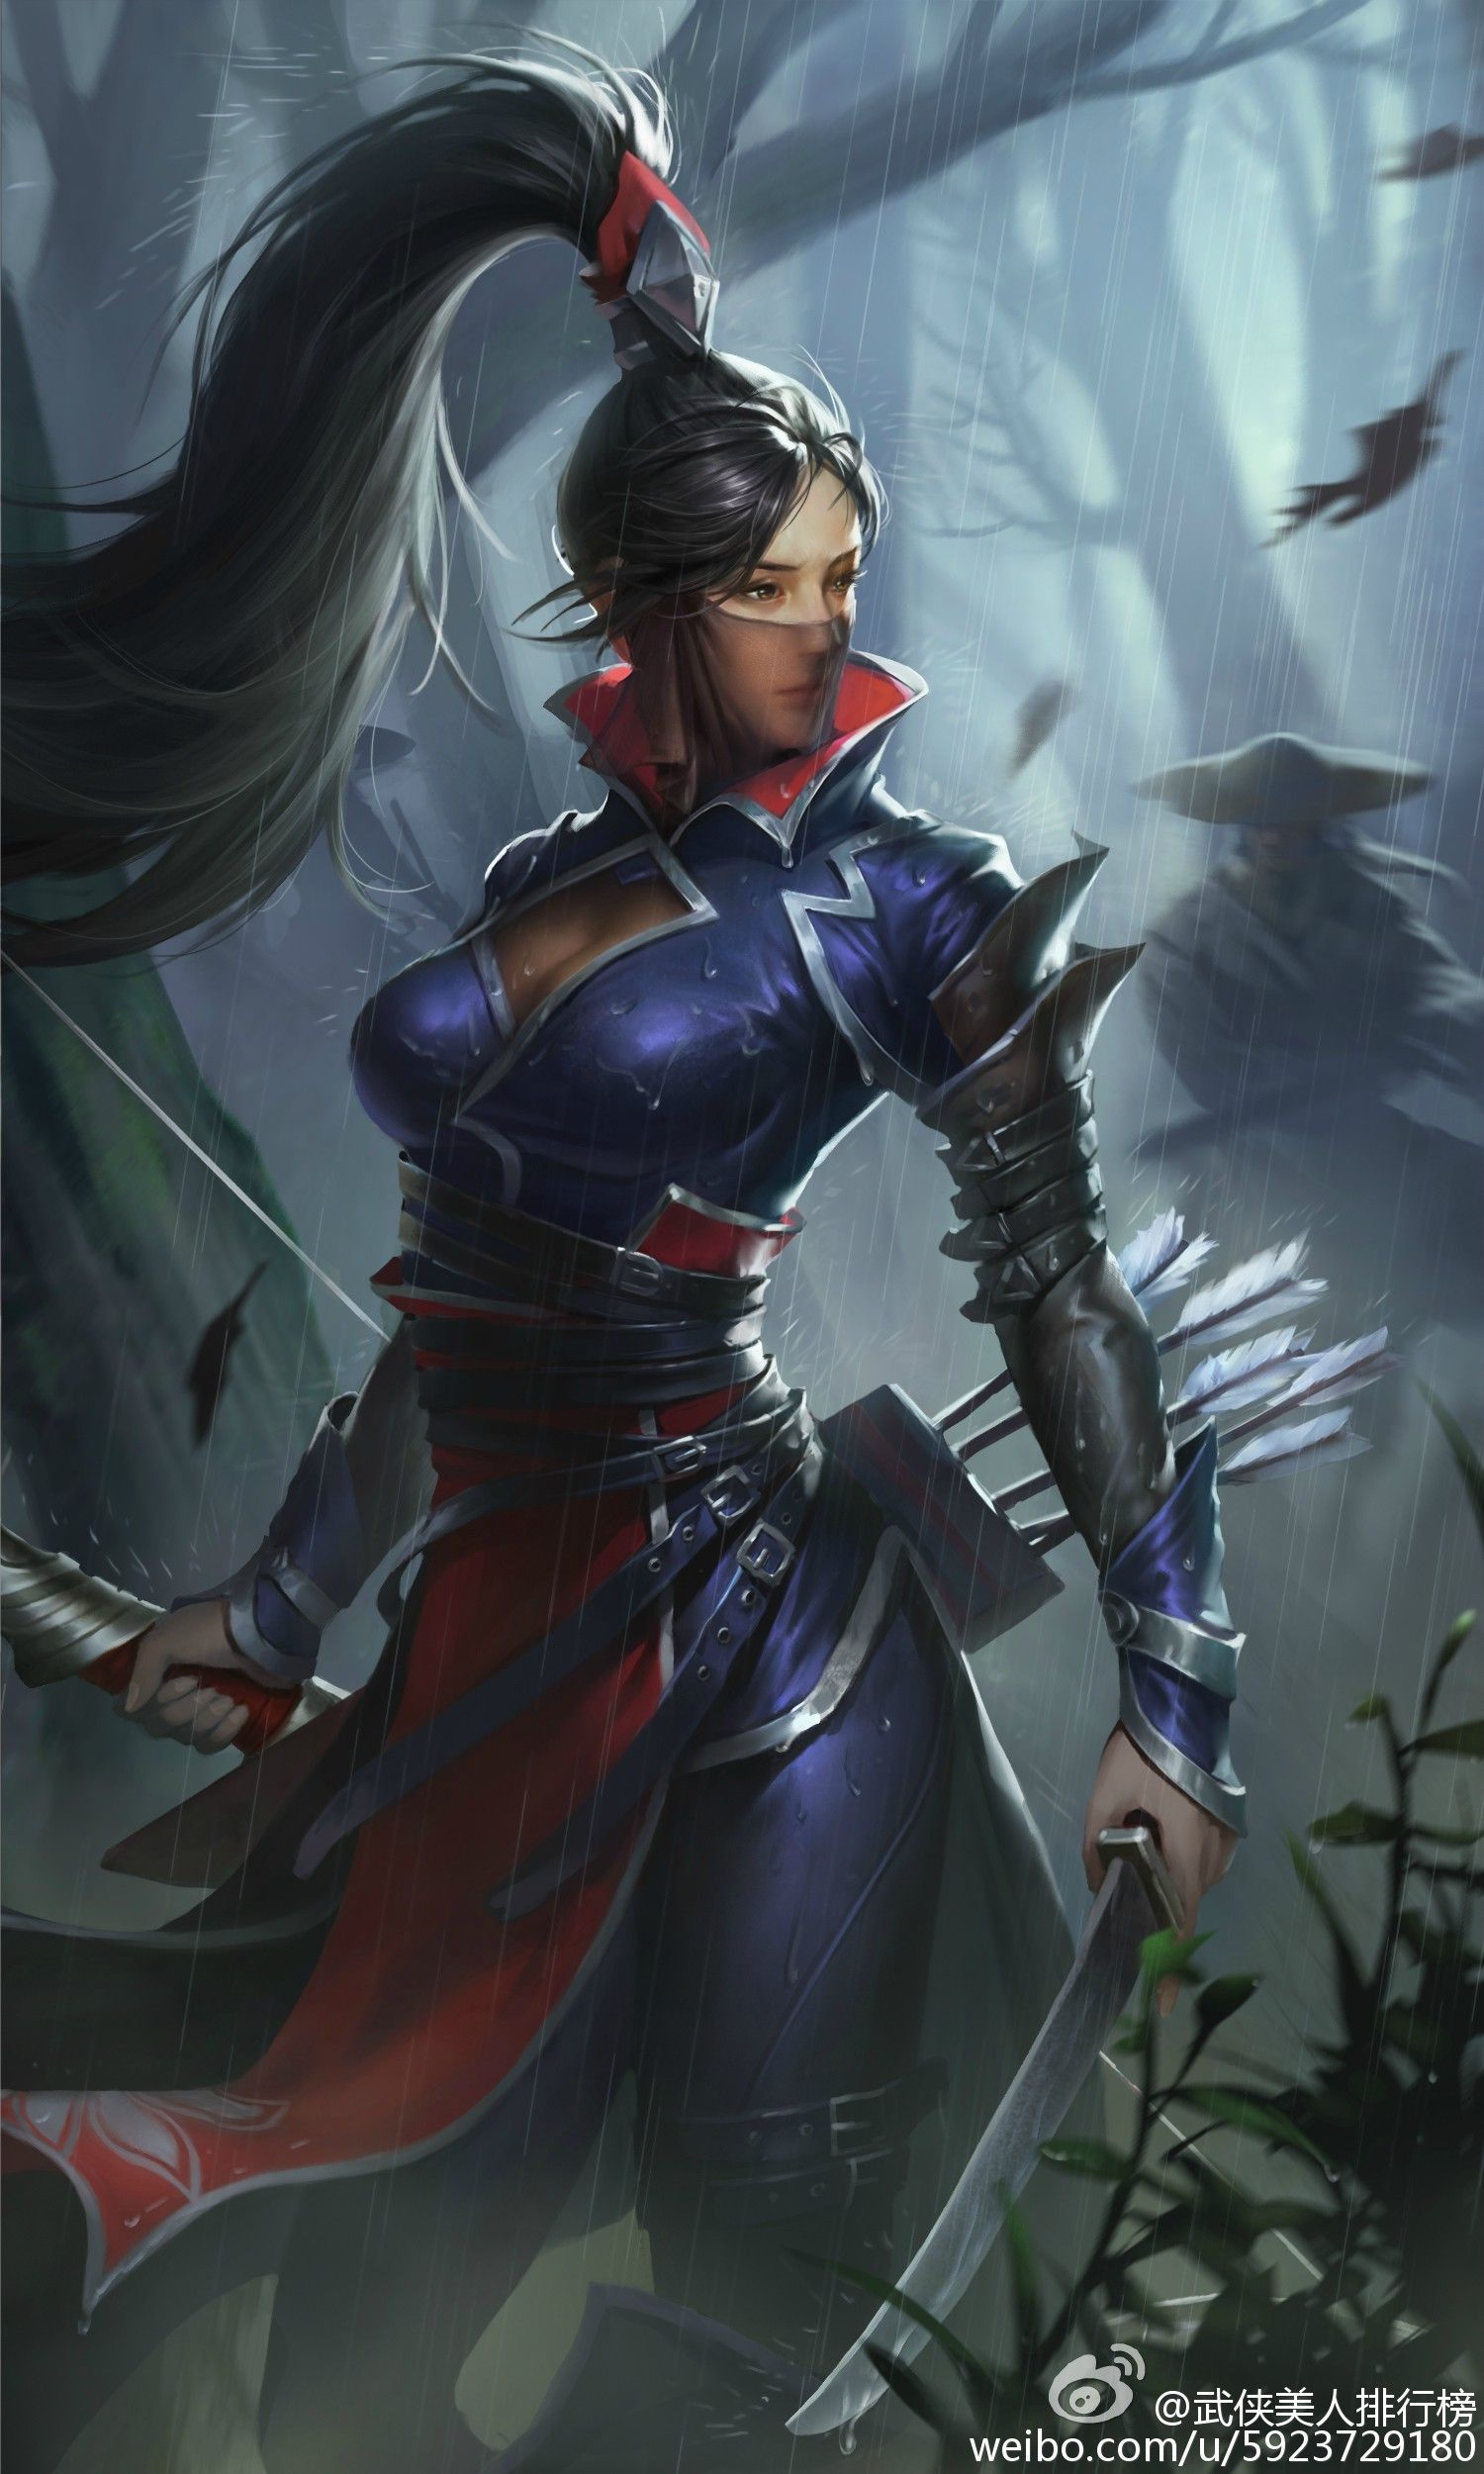 Pin by juan garcia martinez on who the hell made that is - Fantasy female warrior artwork ...